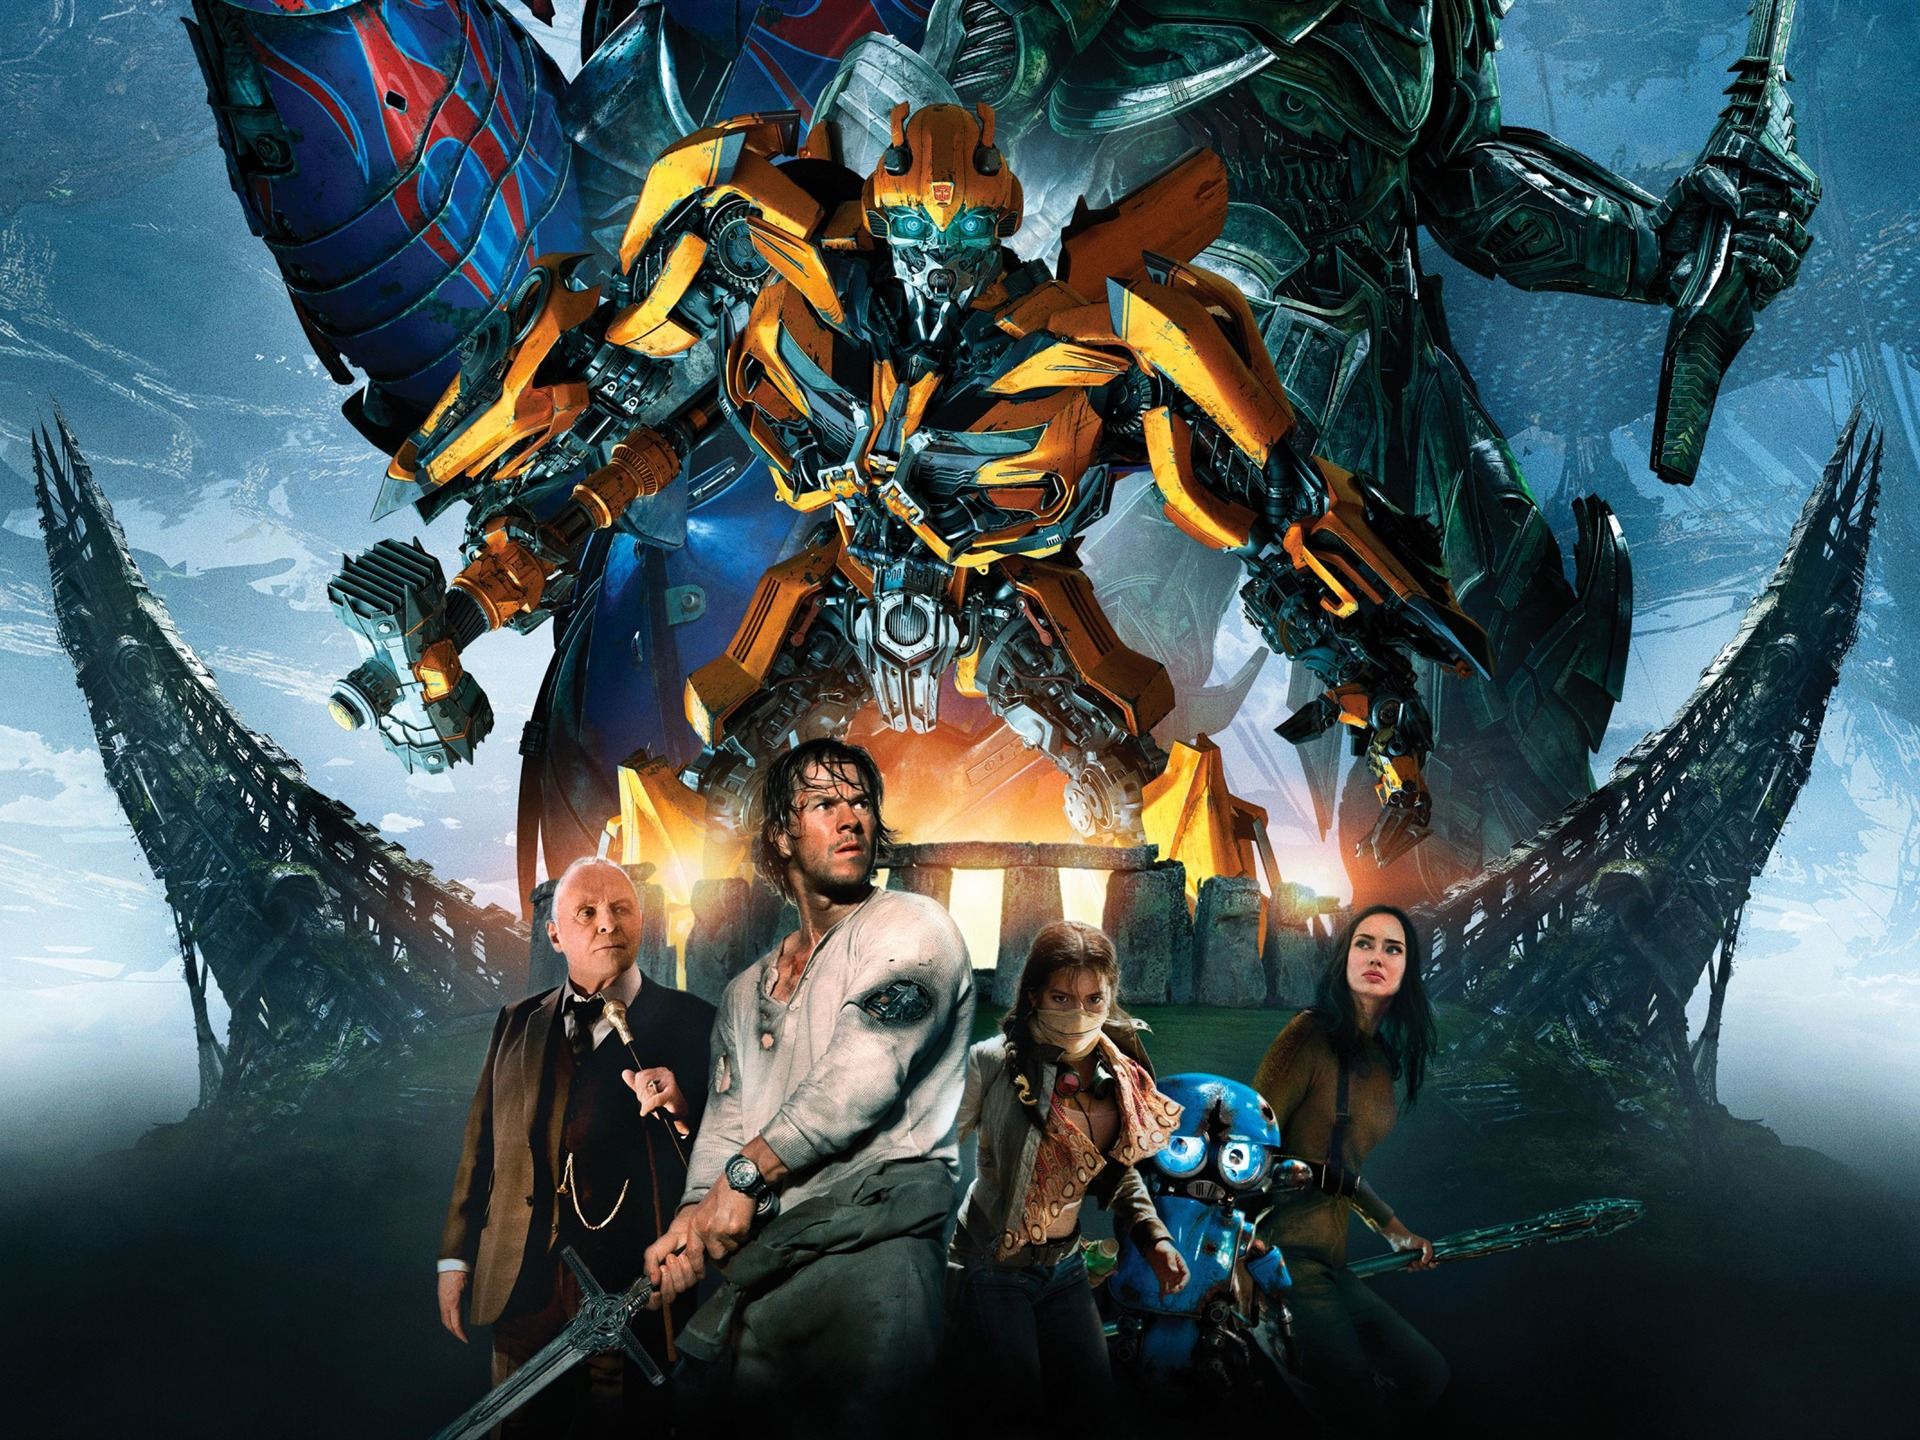 Bumblebee Transformers The Last Knight-2017 Movie HD Wallpapers - 1920x1440 wallpaper download